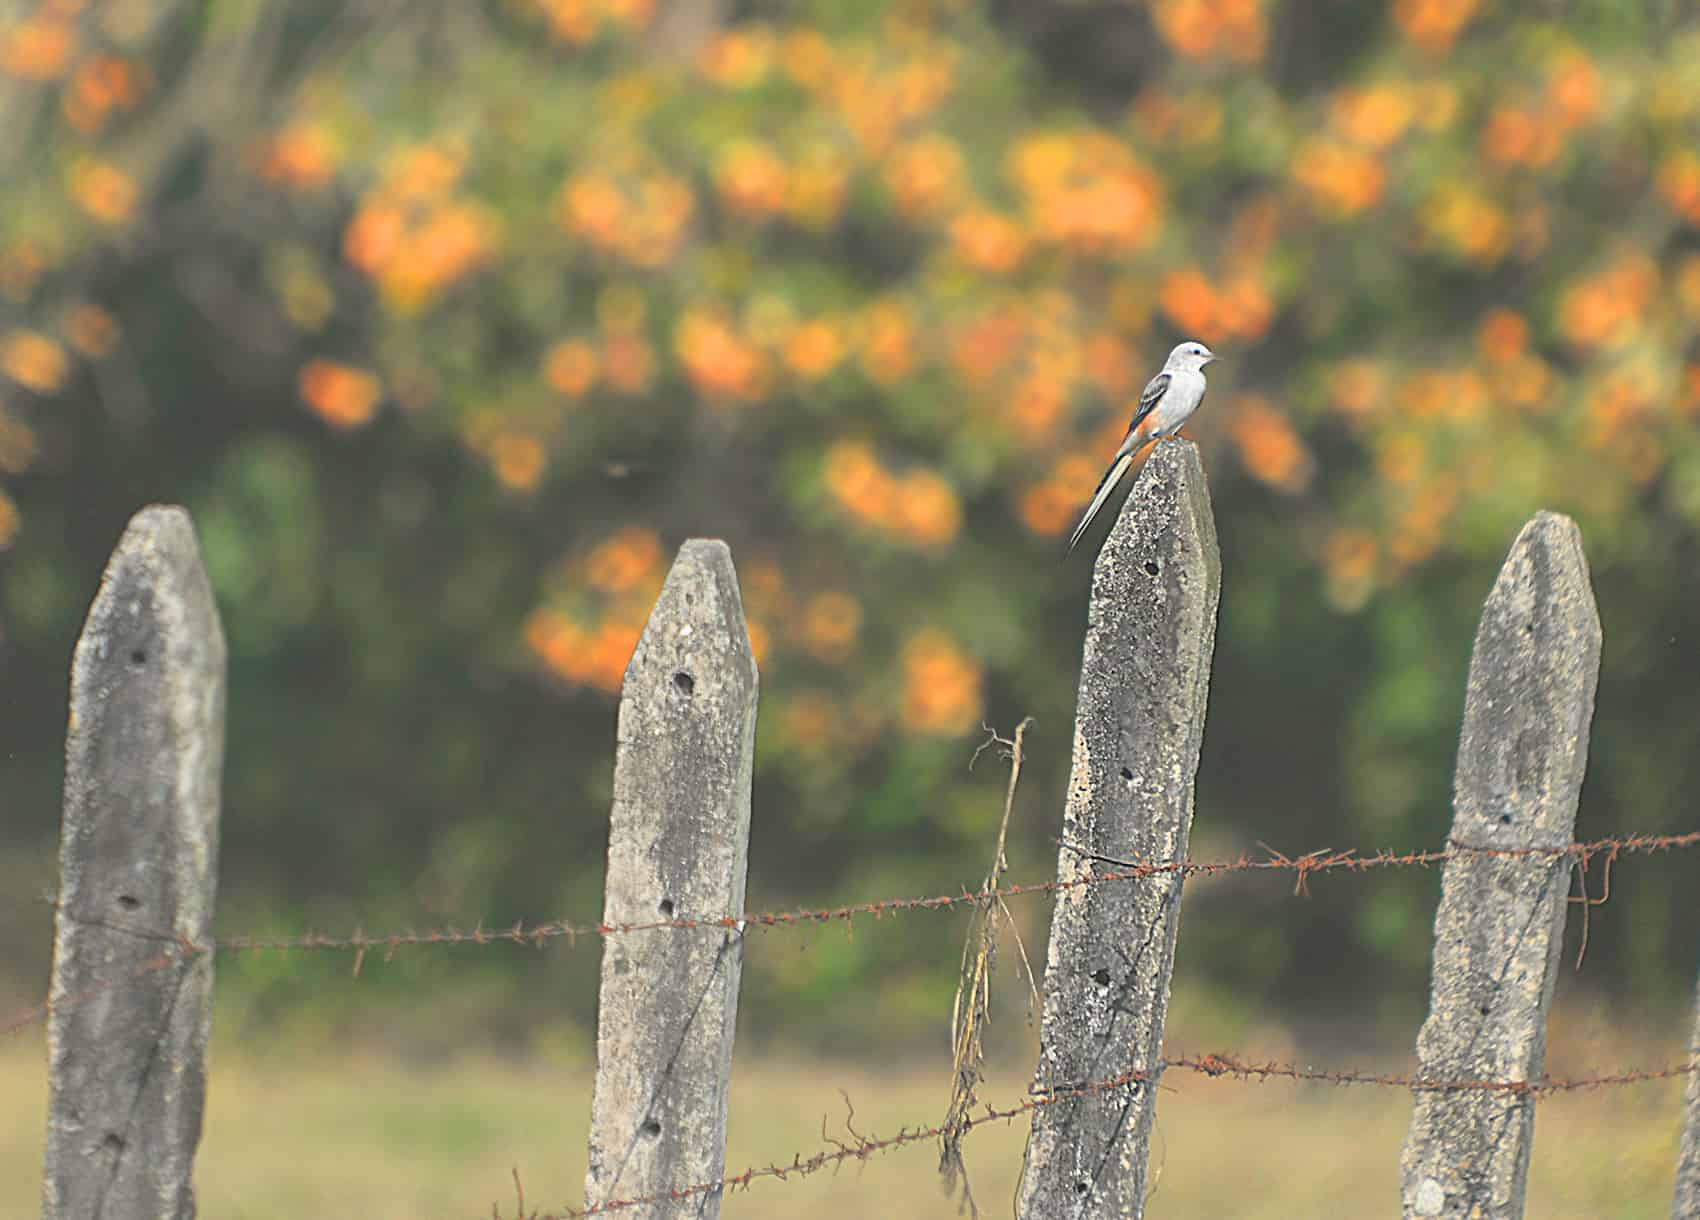 The scissor-tailed flycatcher.